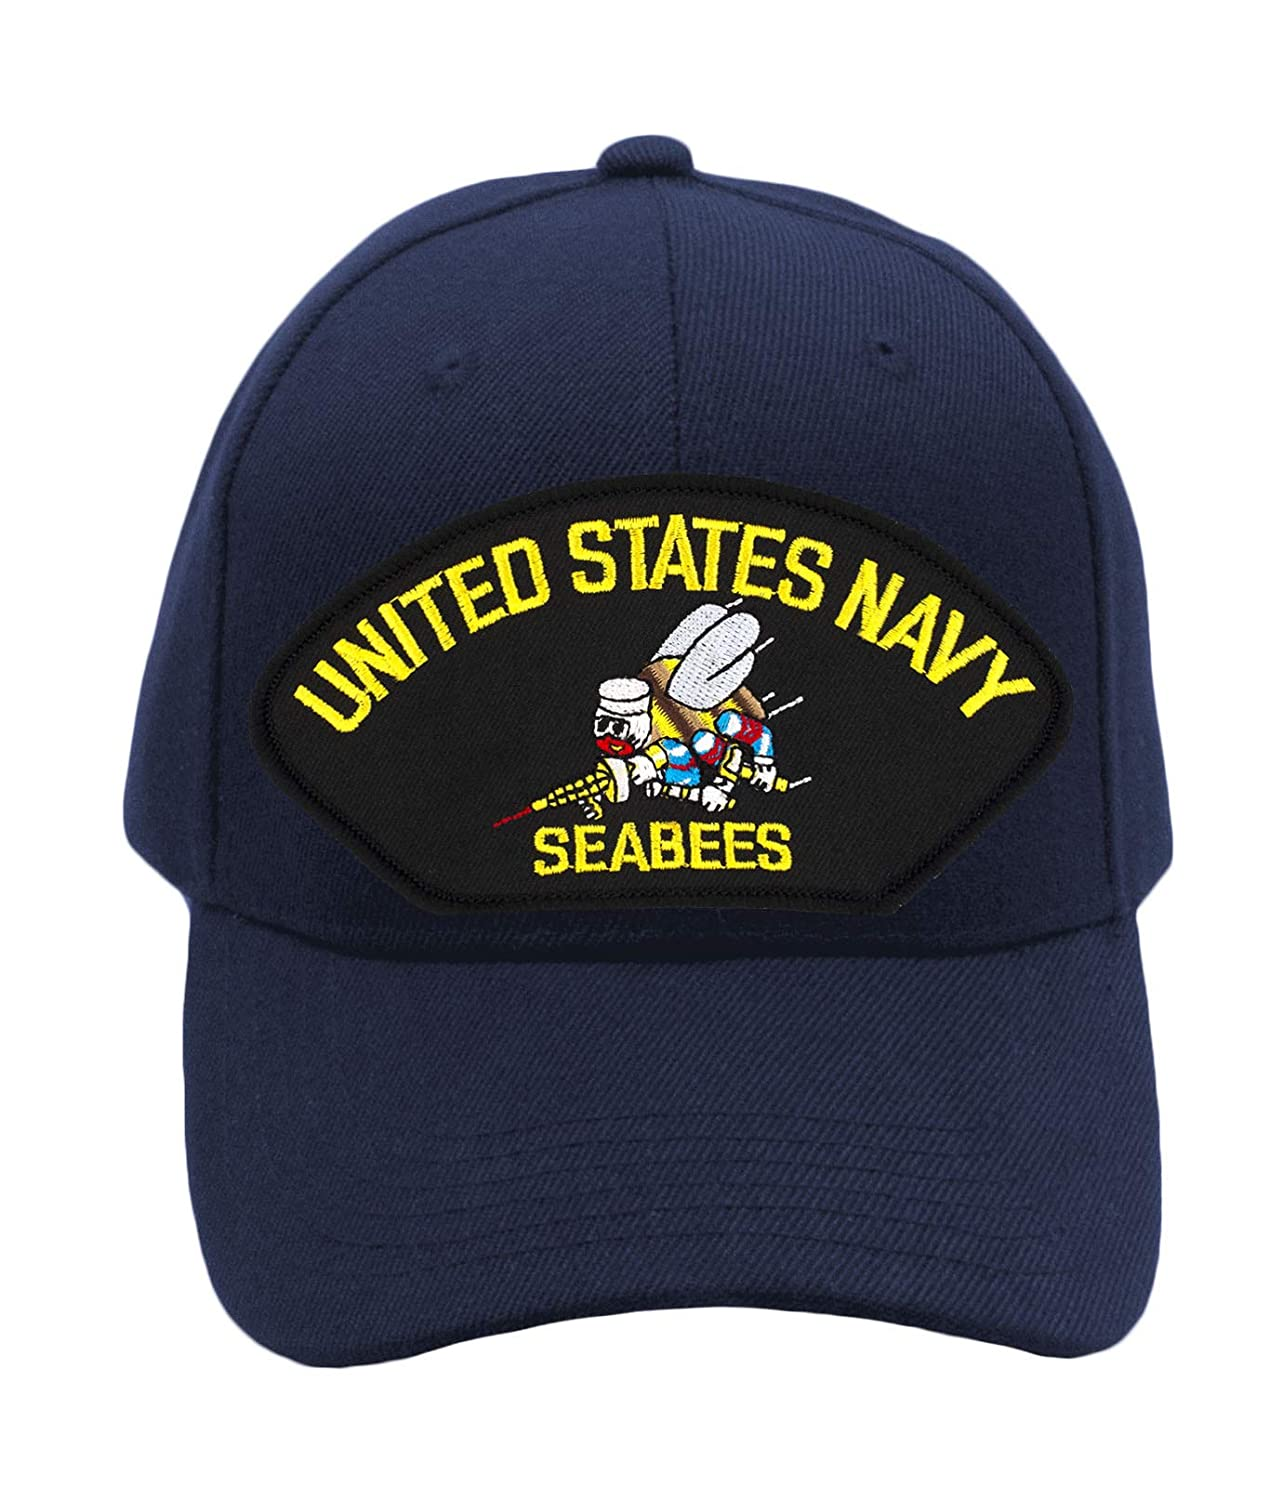 79e67c6b6d8 Patchtown US Navy Seabees Hat Ballcap Adjustable One Size Fits Most (Black